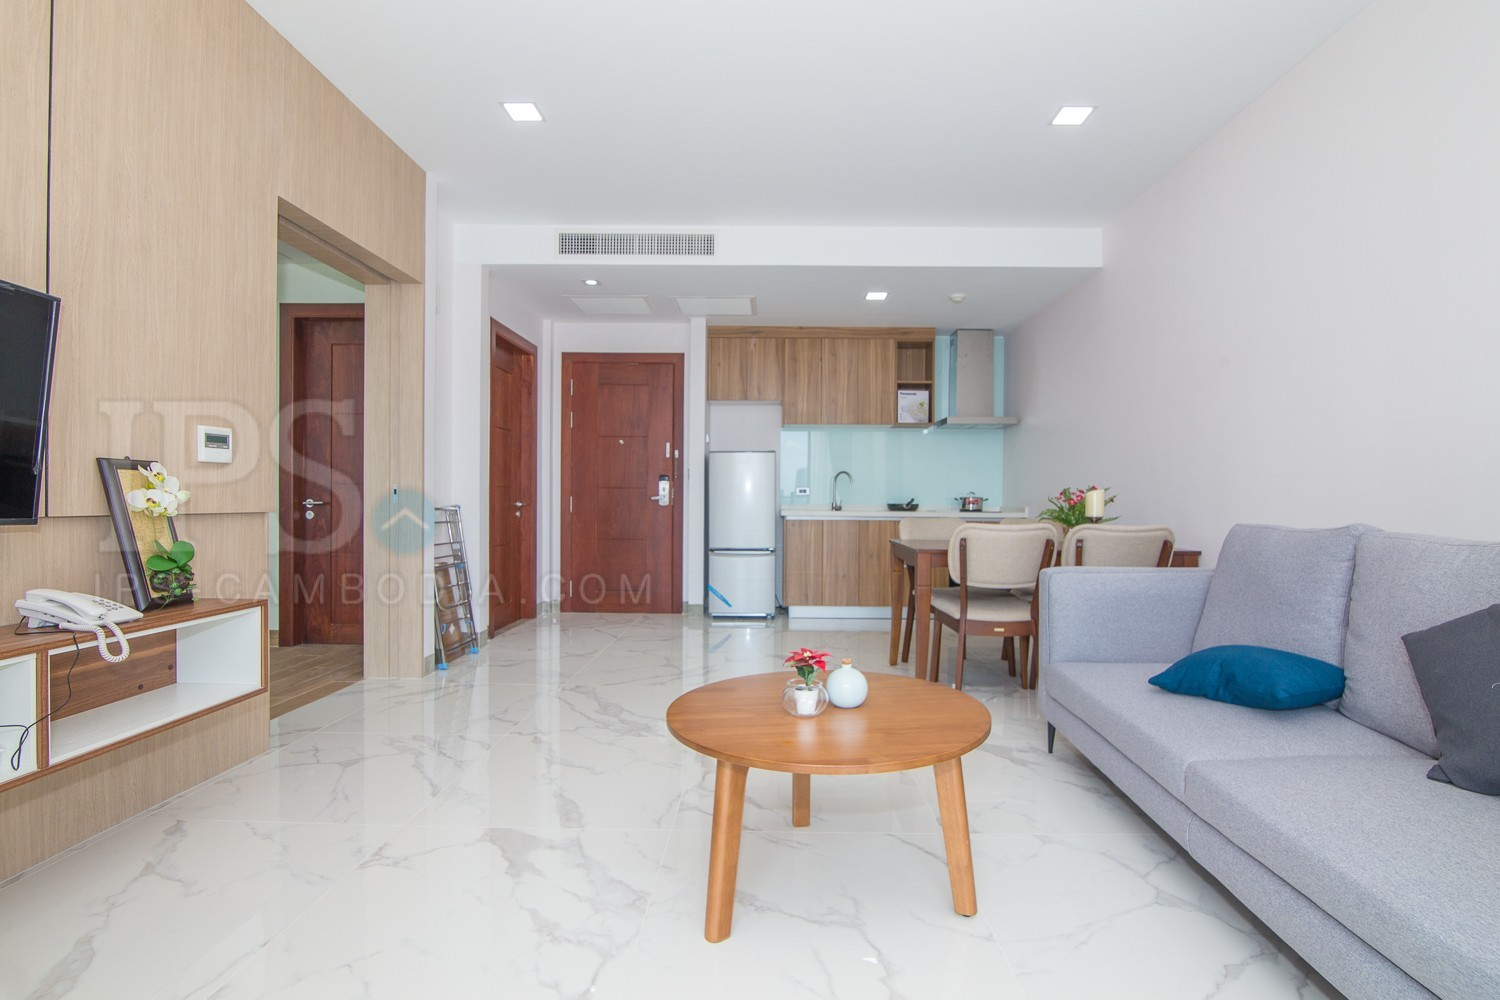 1 Bedroom Service Apartment For Rent - Toul Svay Prey II, Phnom Penh